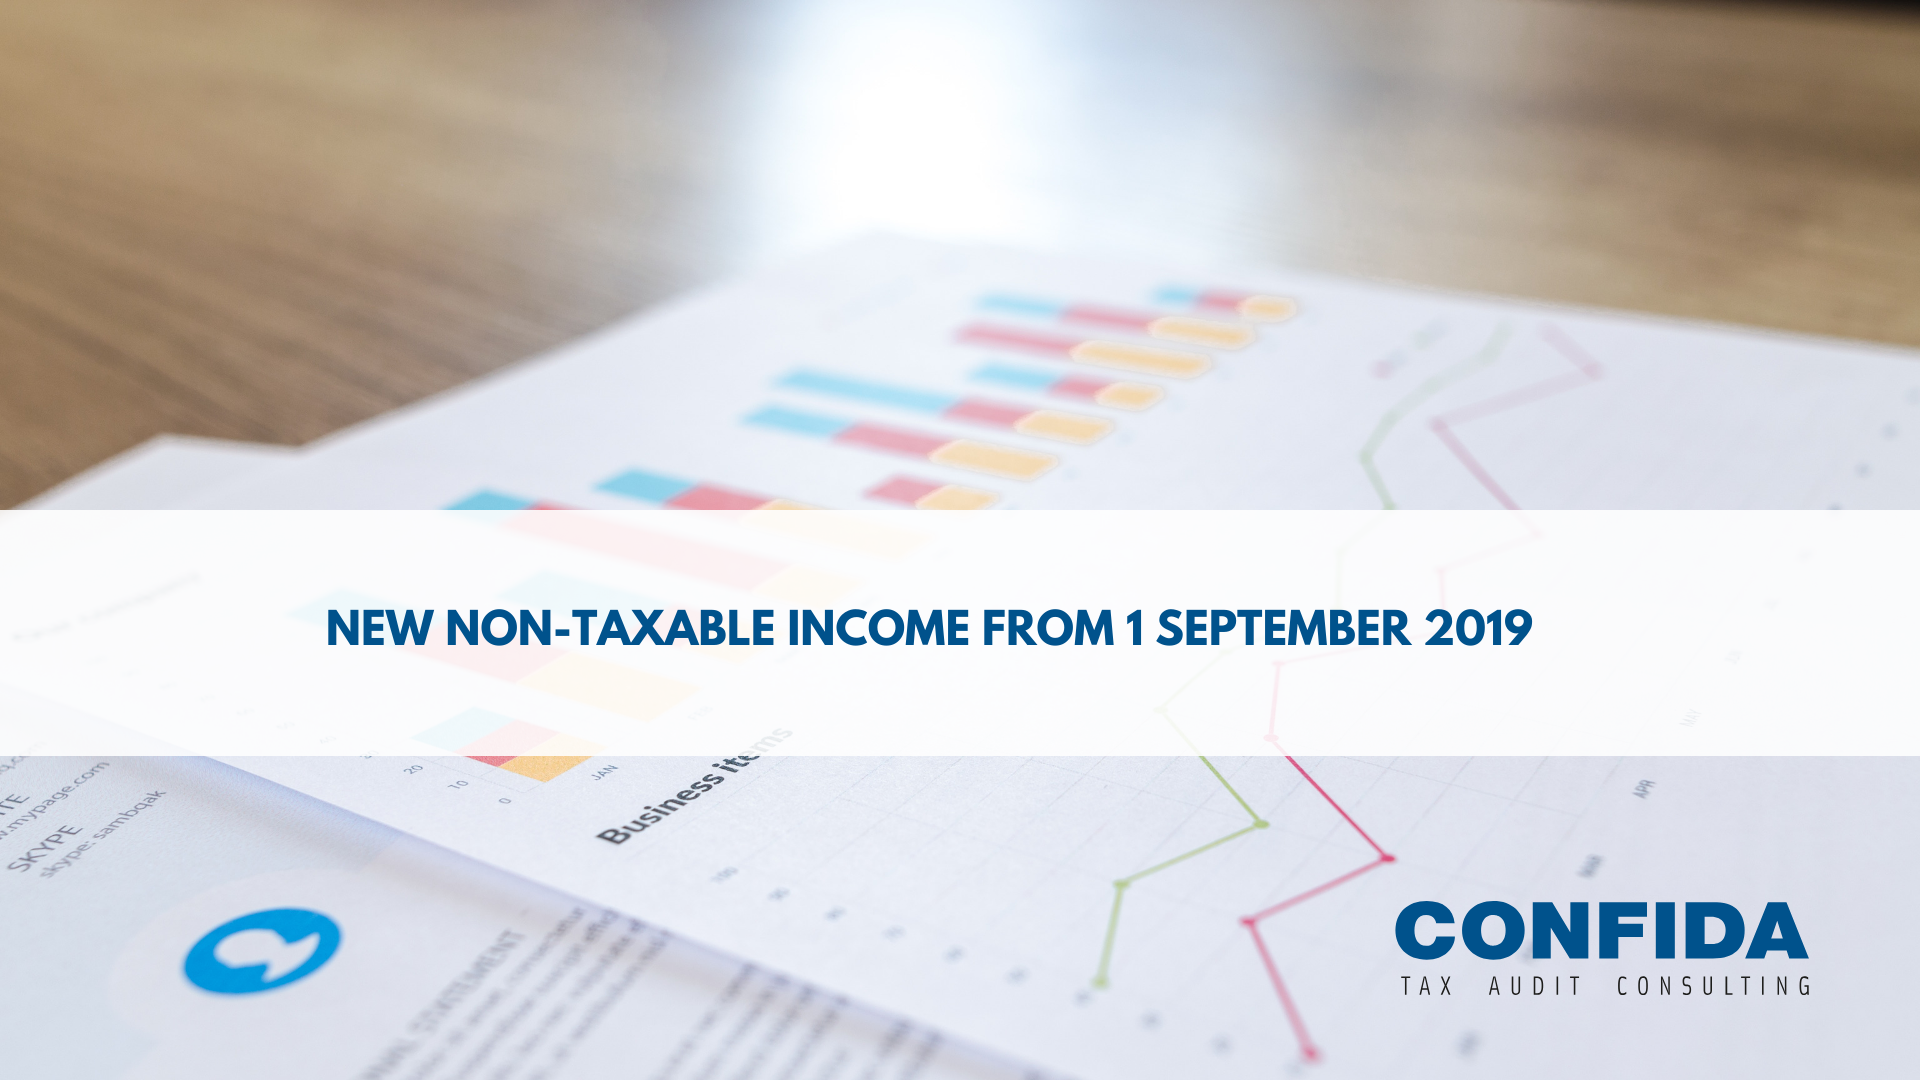 New non-taxable income from 1 September 2019